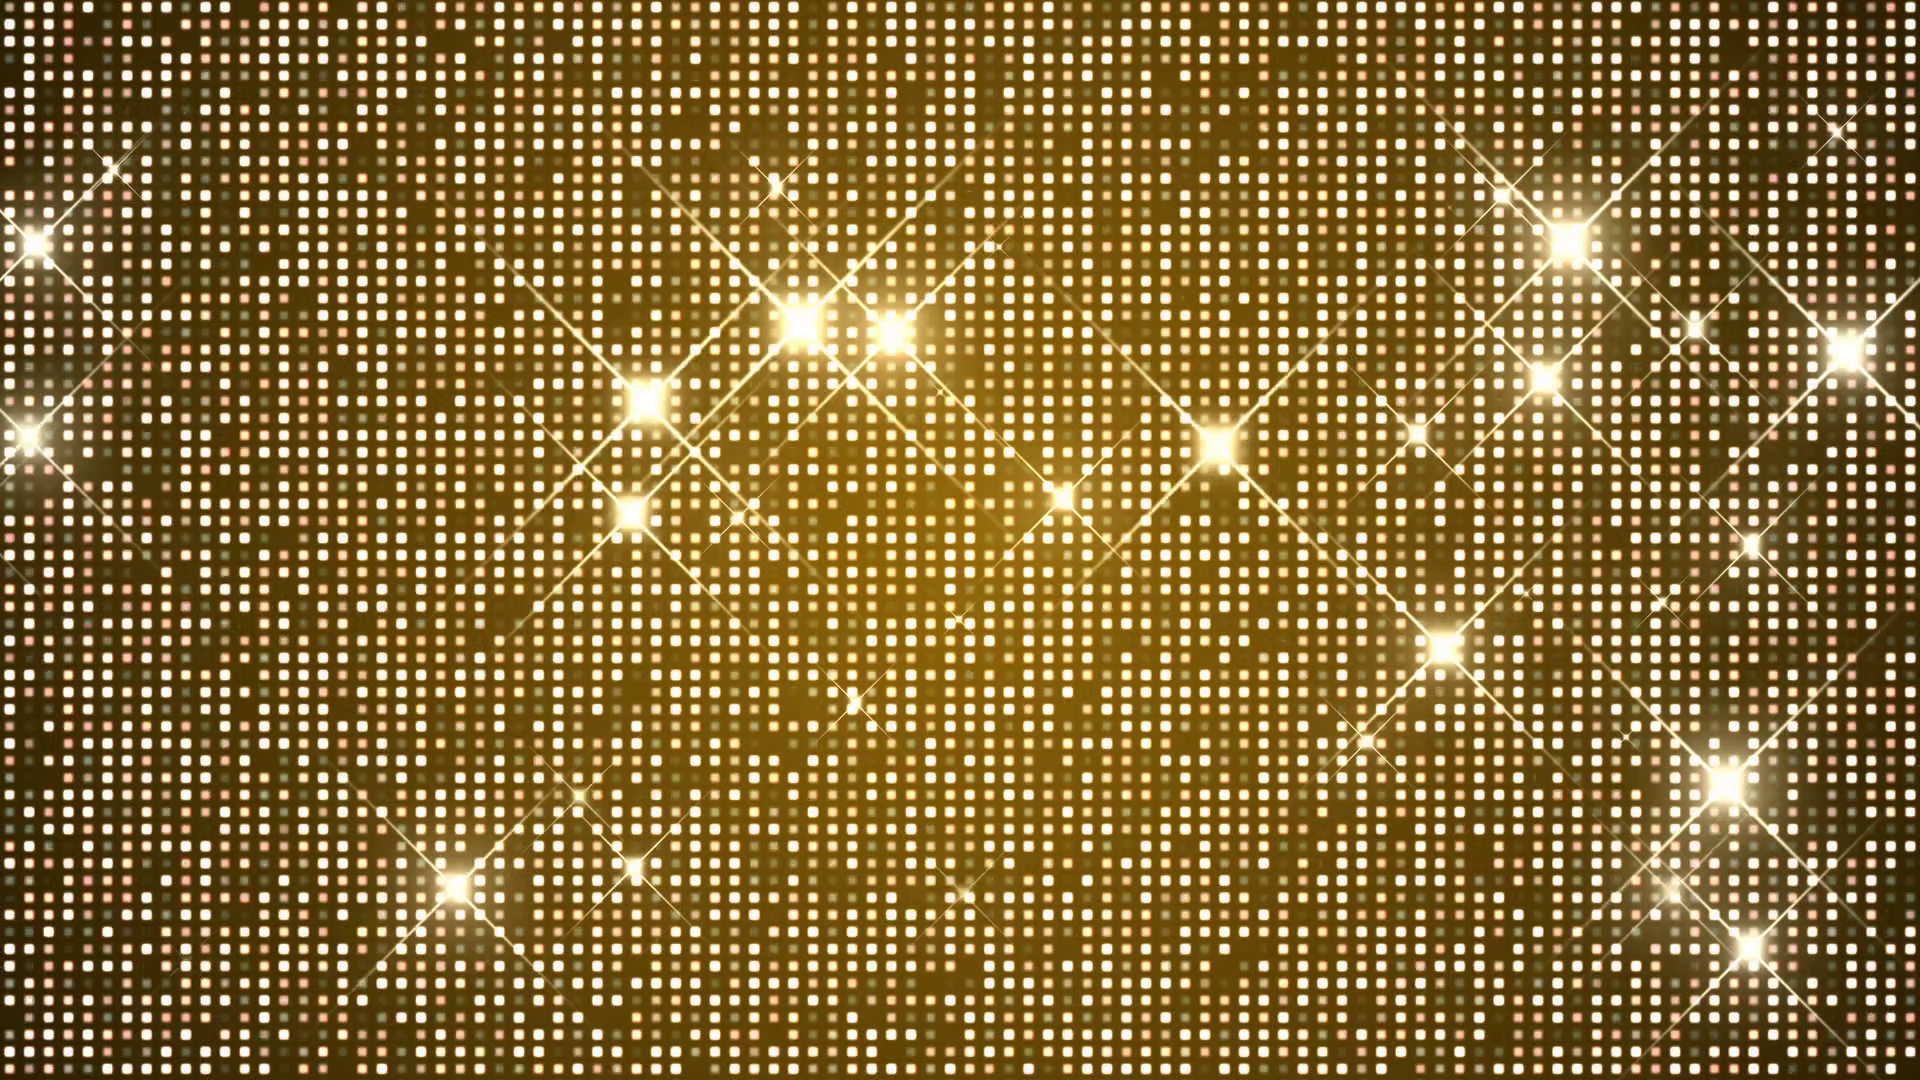 Gold Glitter Png, png collections at sccpre.cat.